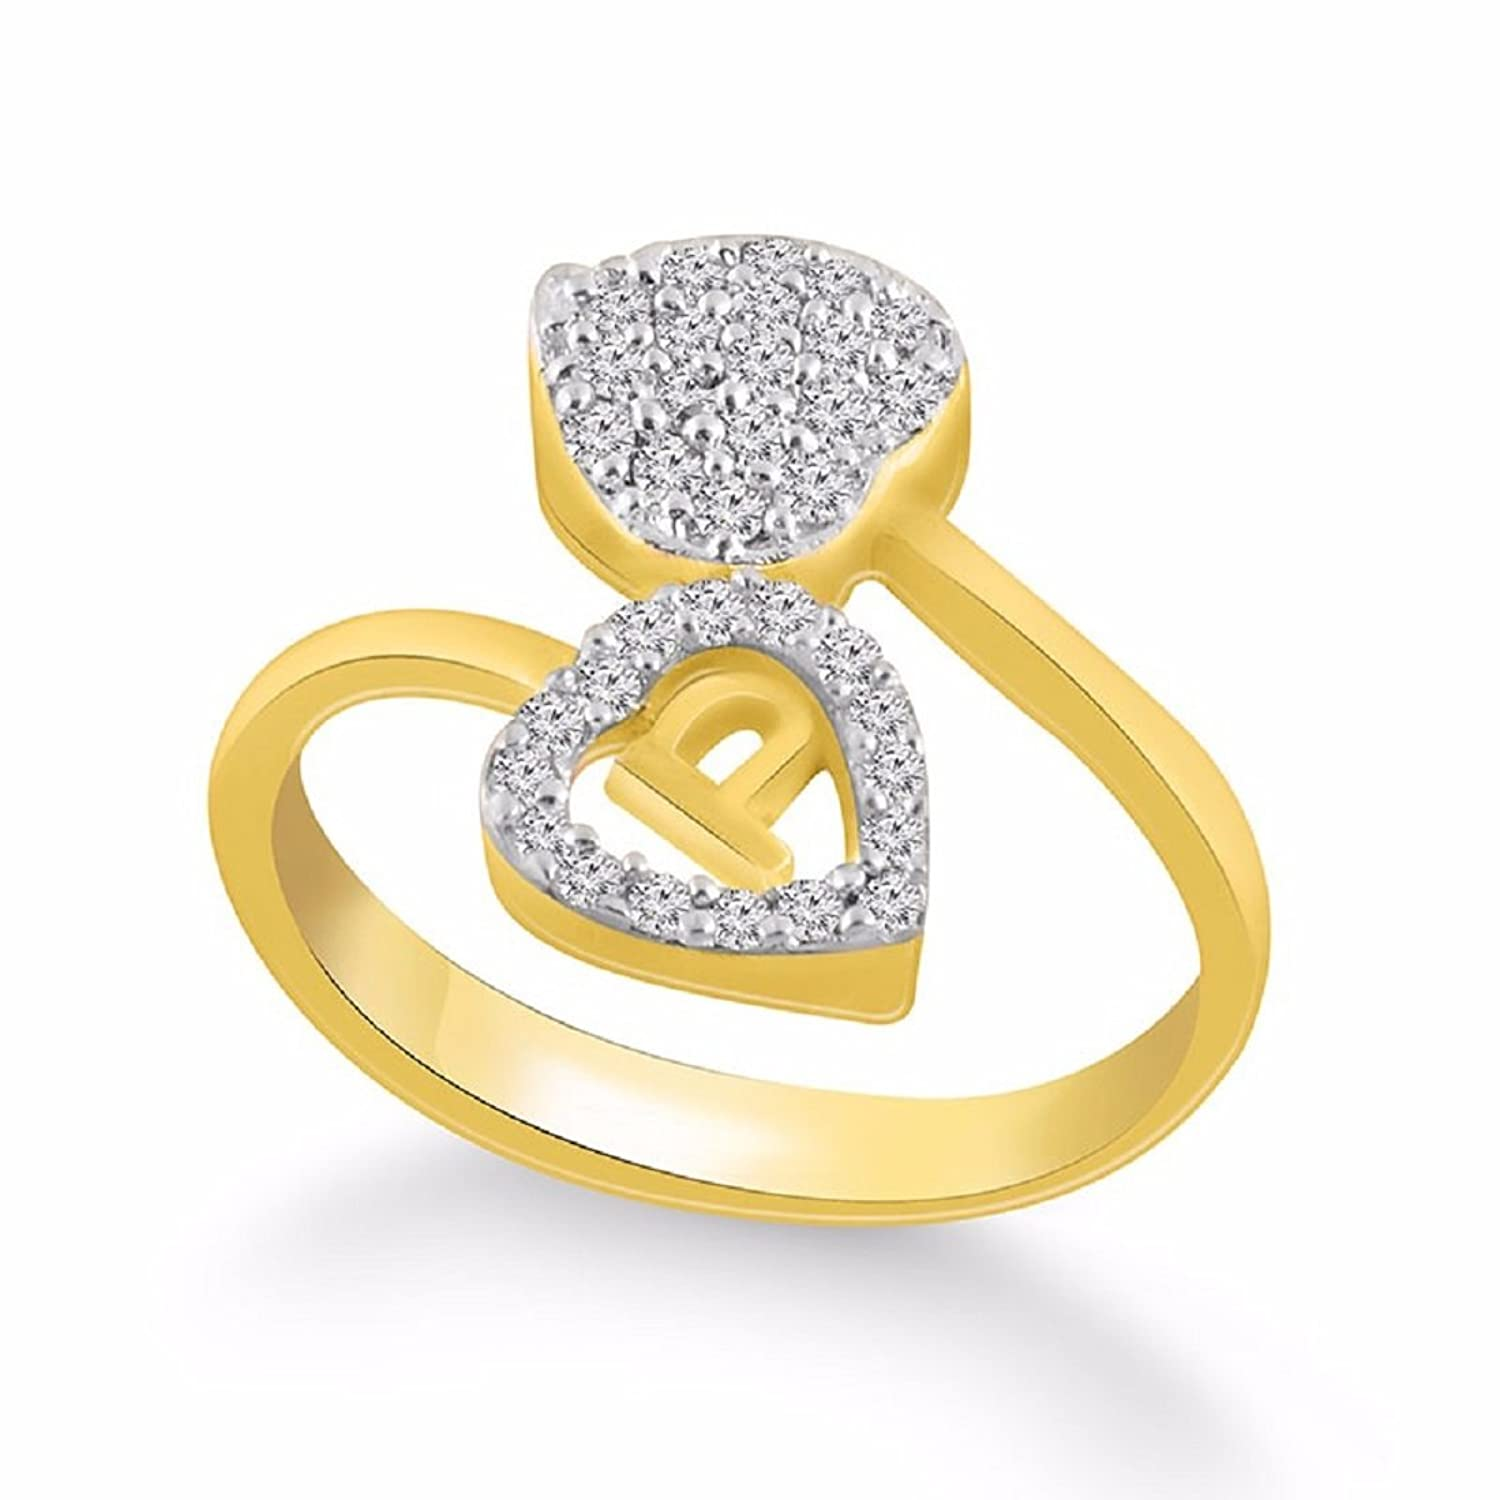 buy low india jewellery free online rings plated p ring kanak diamond any at in for designed gold size women occasion dp heart jewels girls prices letter